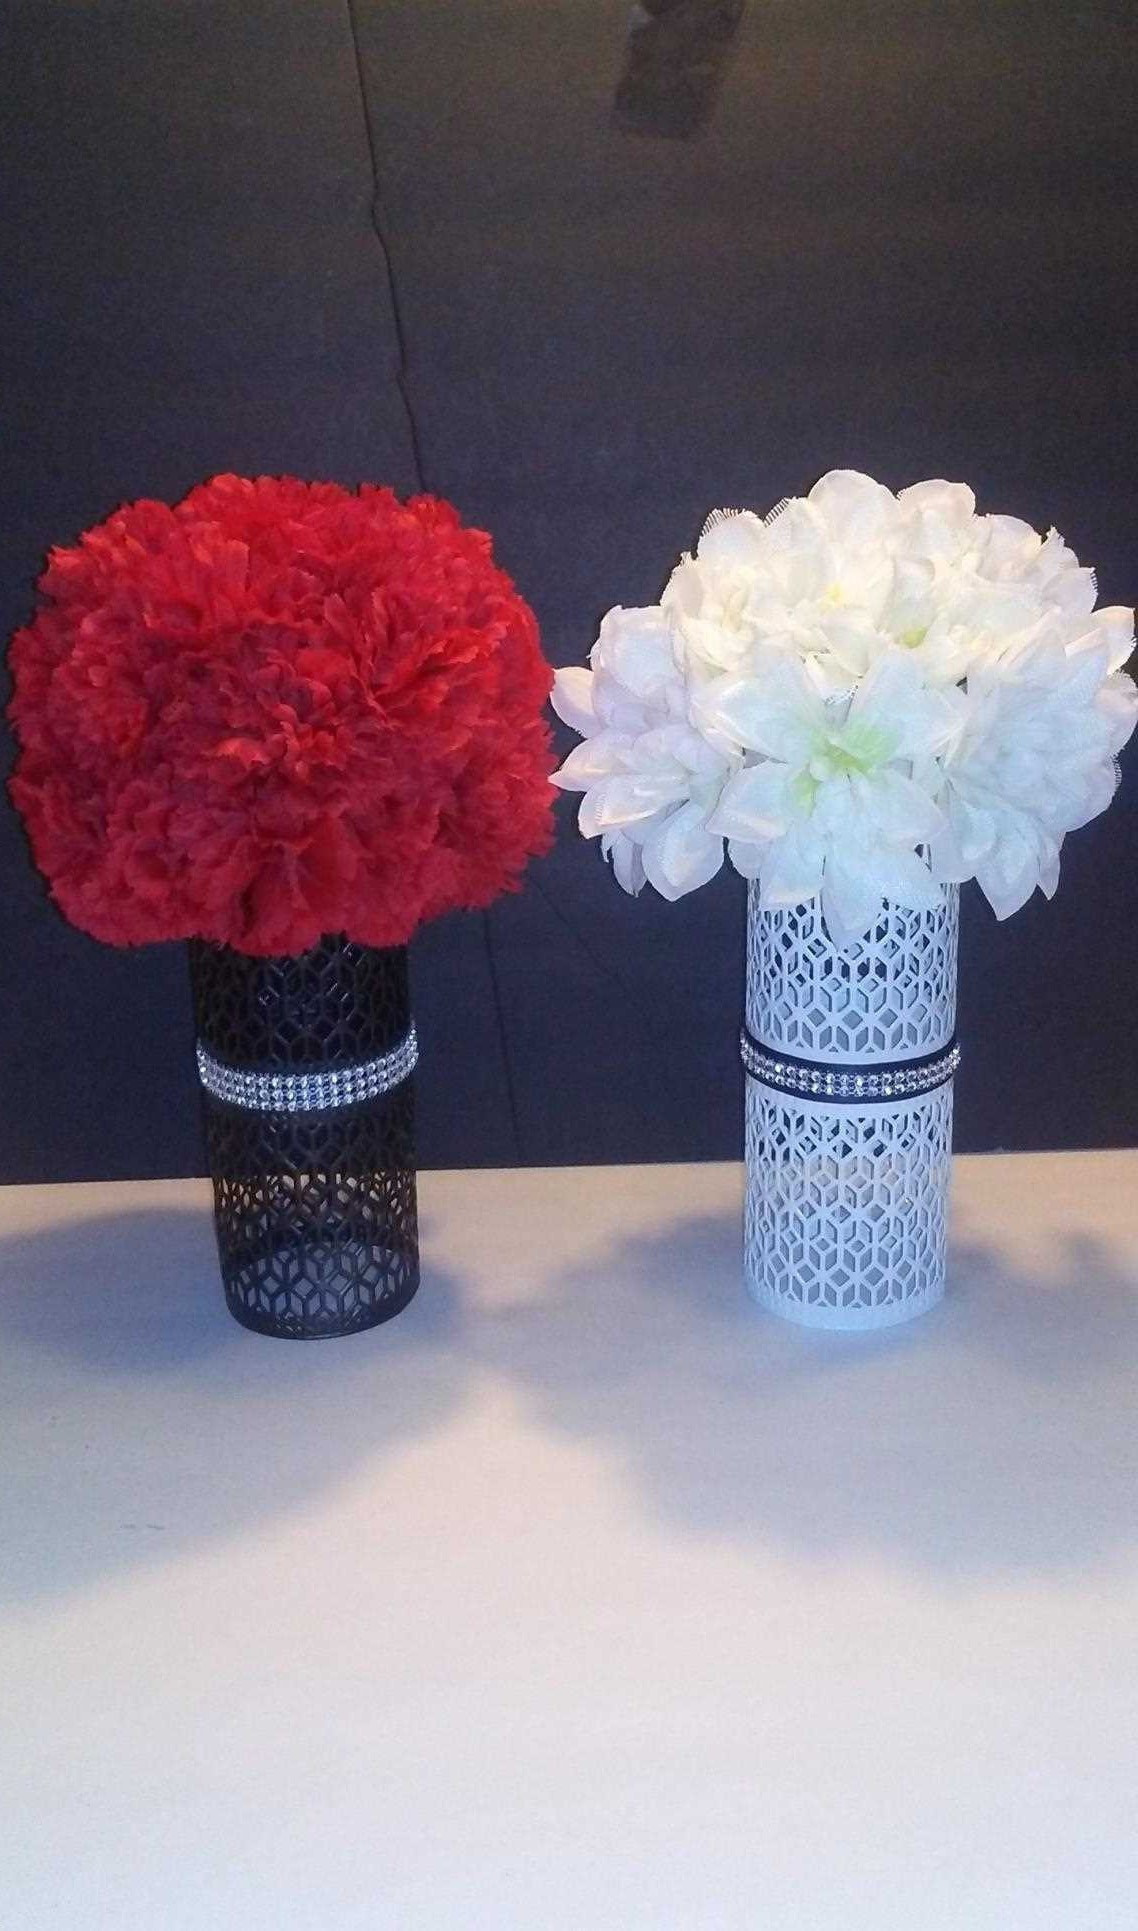 glitter vase wedding centerpiece of 20 white and navy blue wedding decor italib net intended for dollar tree wedding decorations awesome h vases dollar vase i 0d scheme red and white